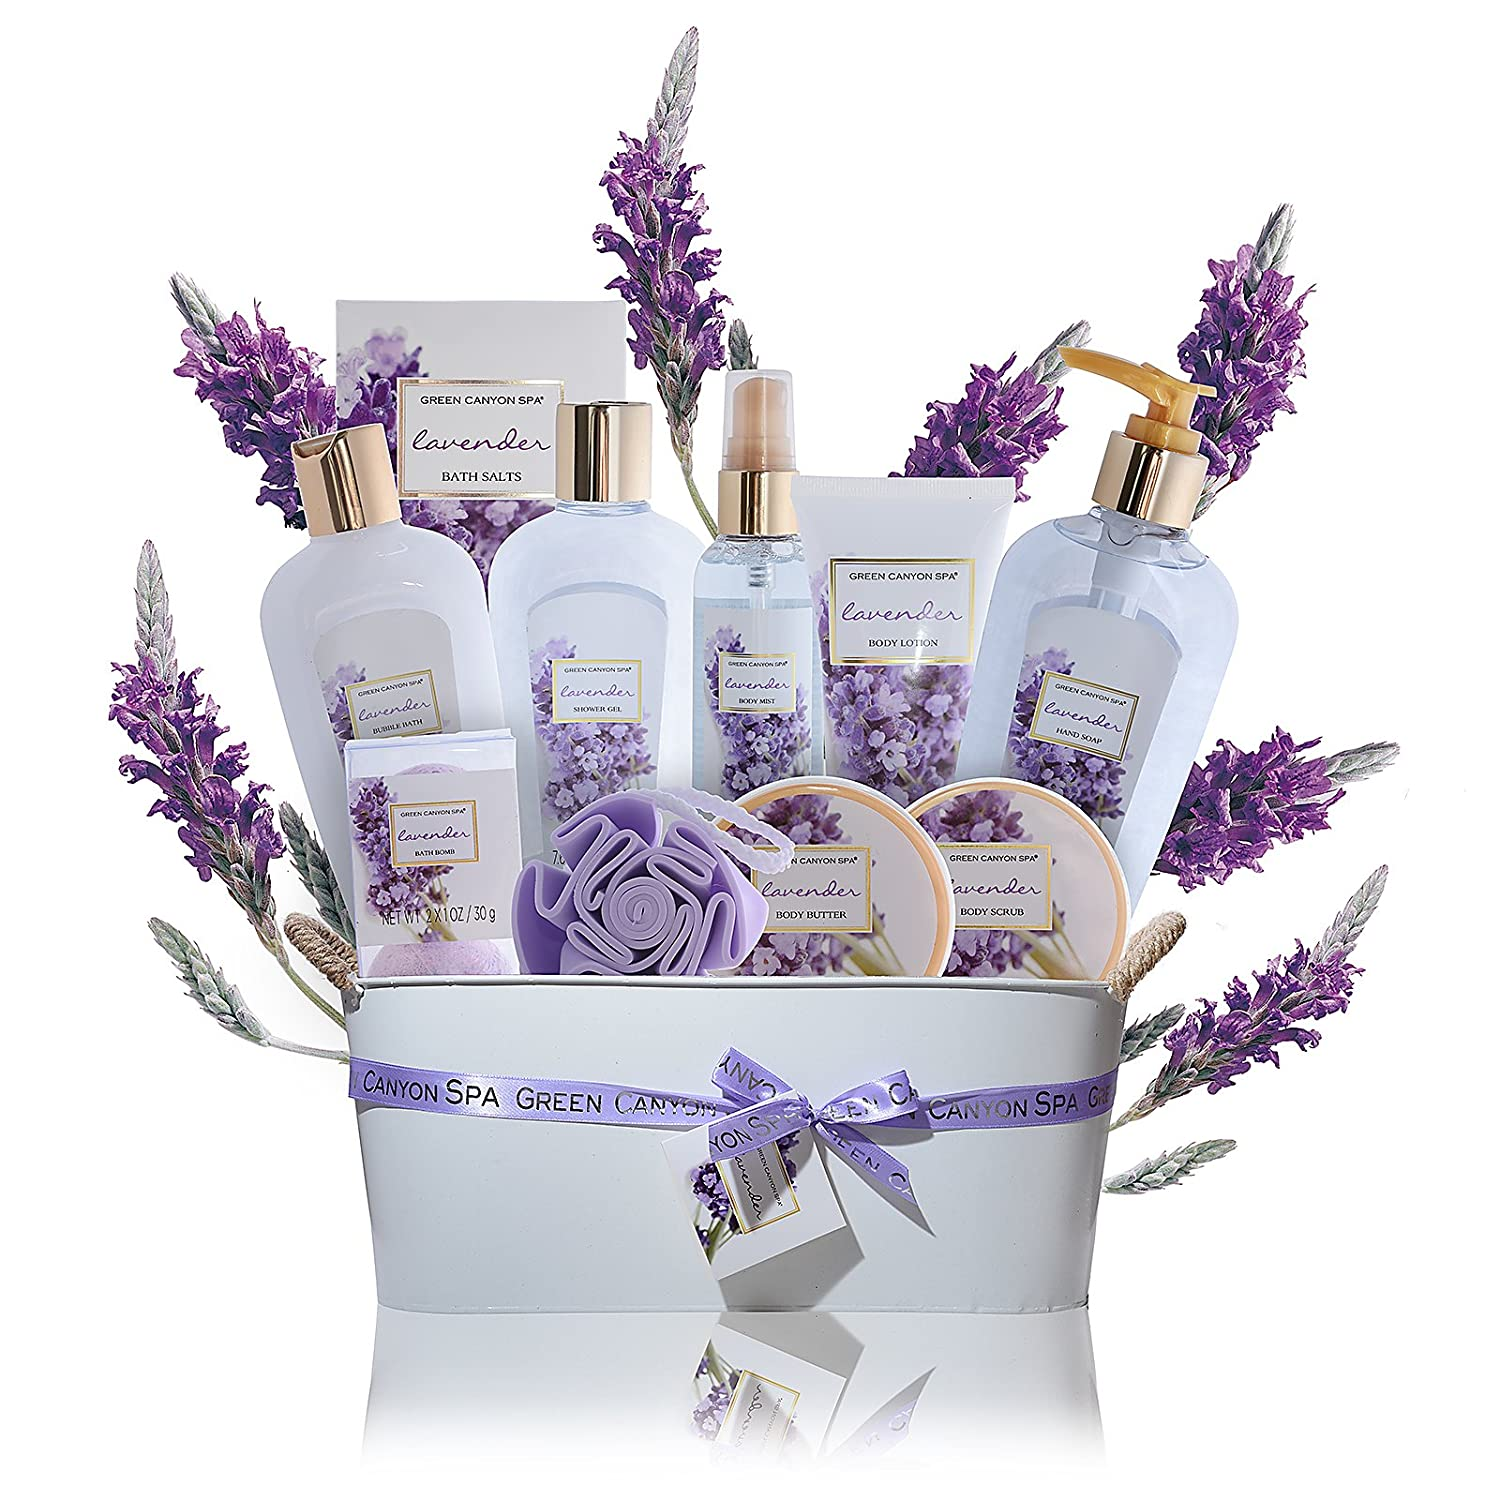 Luxury Lavender Gift Baskets for Women - 11 pcs Premium spa gift set with essential oils for Relaxation and Lush Spa Experience Perfect lavender gifts for women, mothers day gifts by Green Canyon Spa